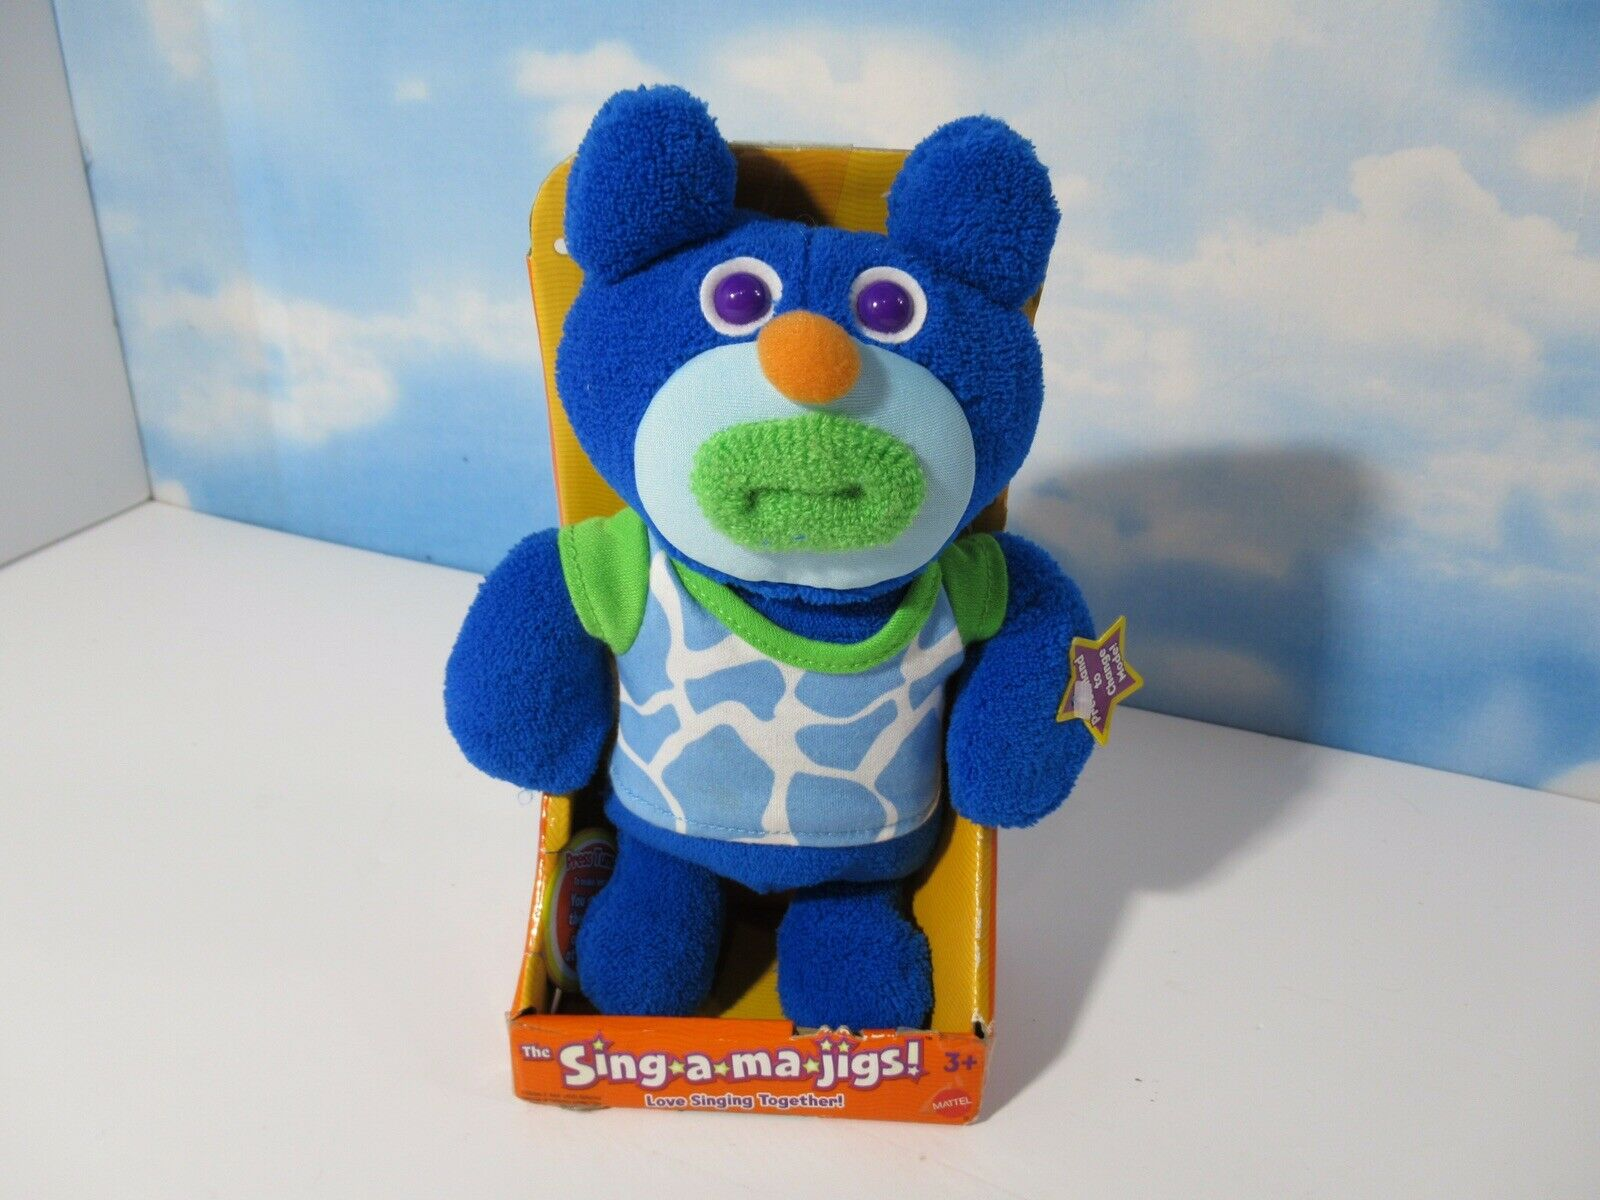 Mattel The Sing-A-Ma-Jigs  Midnight bluee PLUSH NEW BUT NEEDS A NEW BATTERY